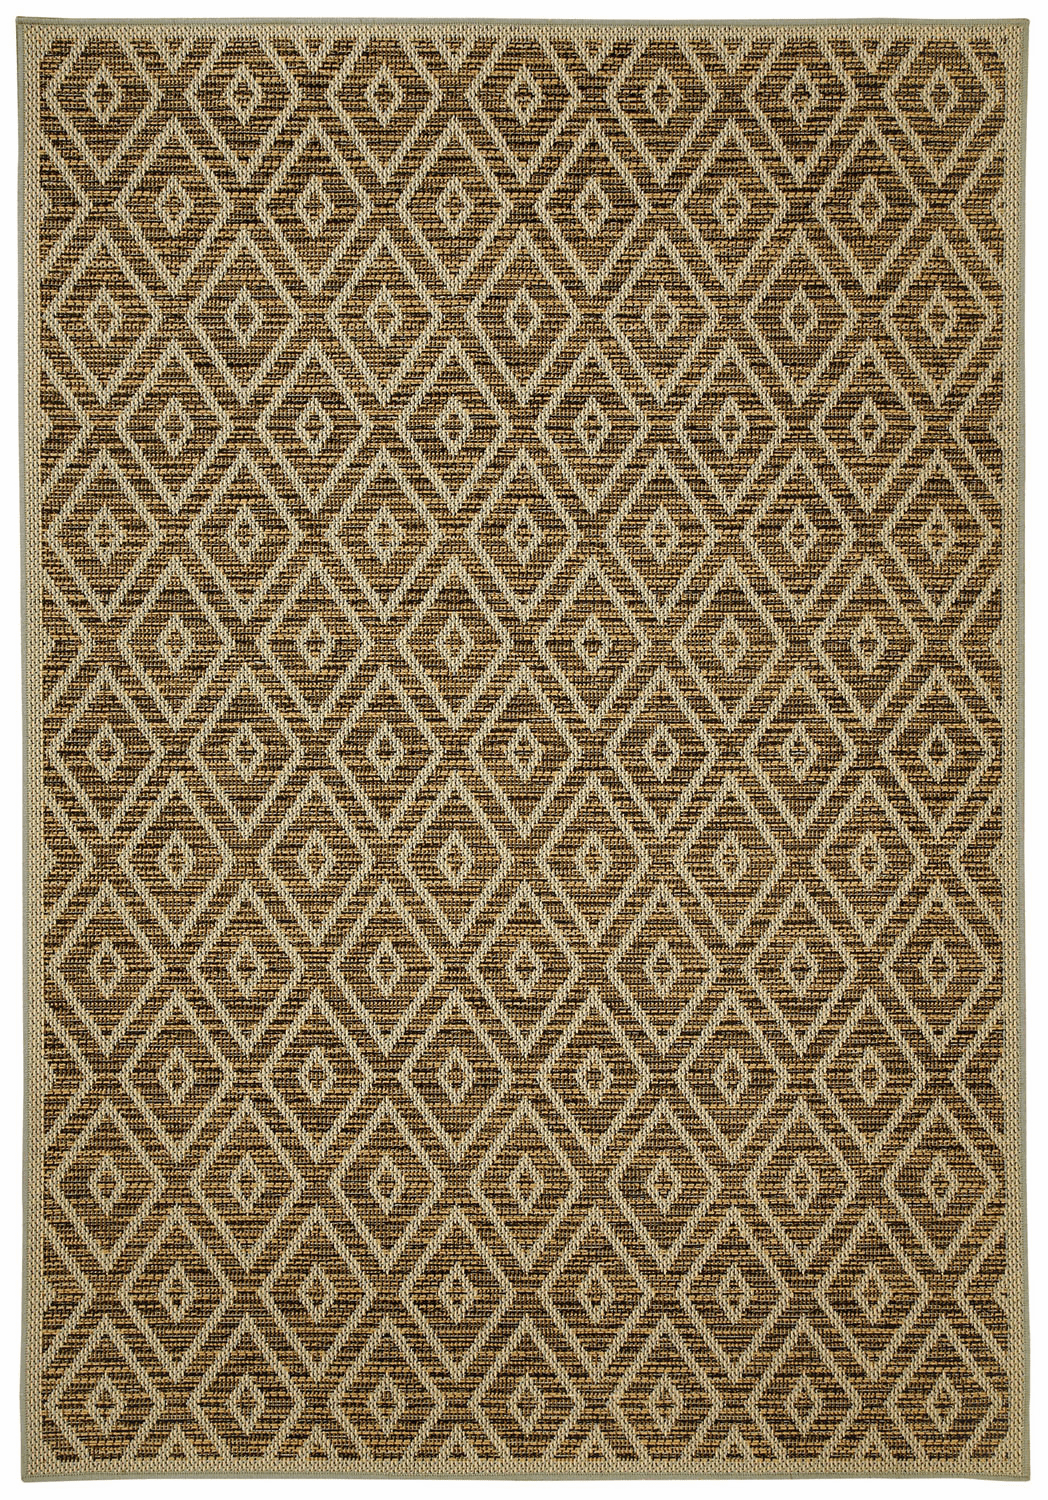 Machine Woven Chocolate Rug